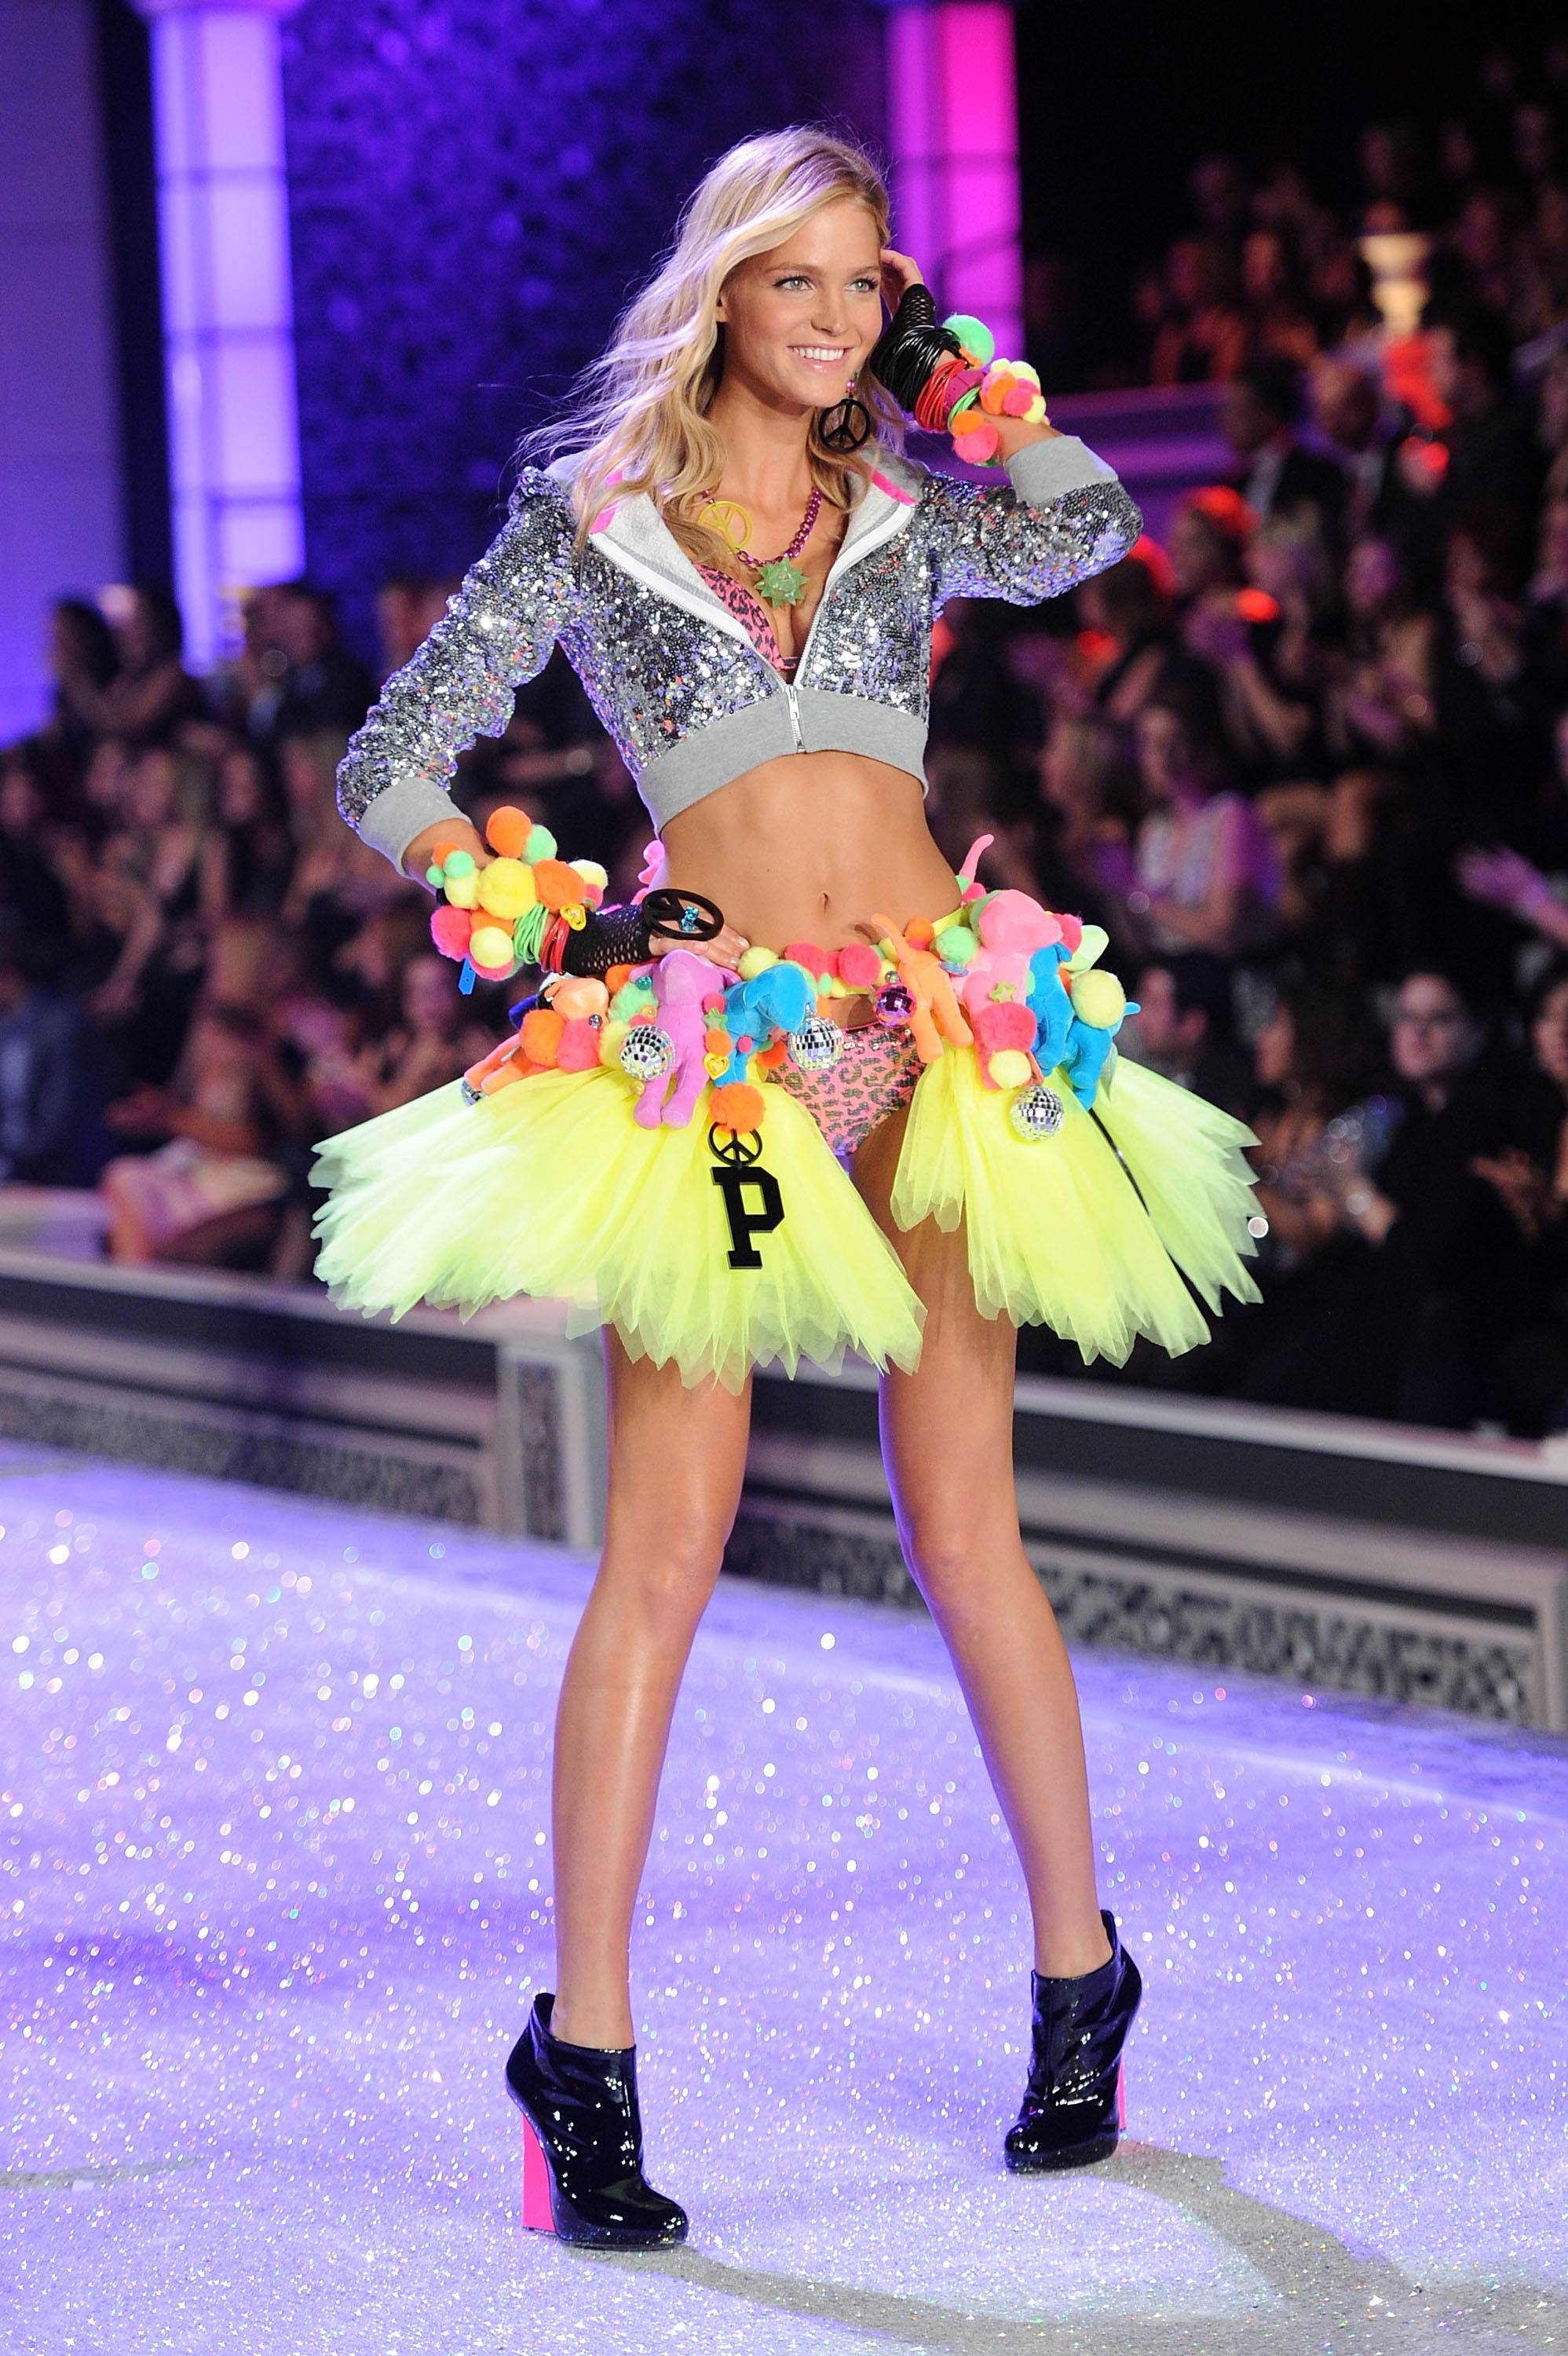 Victorias secret fashion show 2011 - Erin Heatherton Victorias Secret Fashion Show 2011 03 Full Size